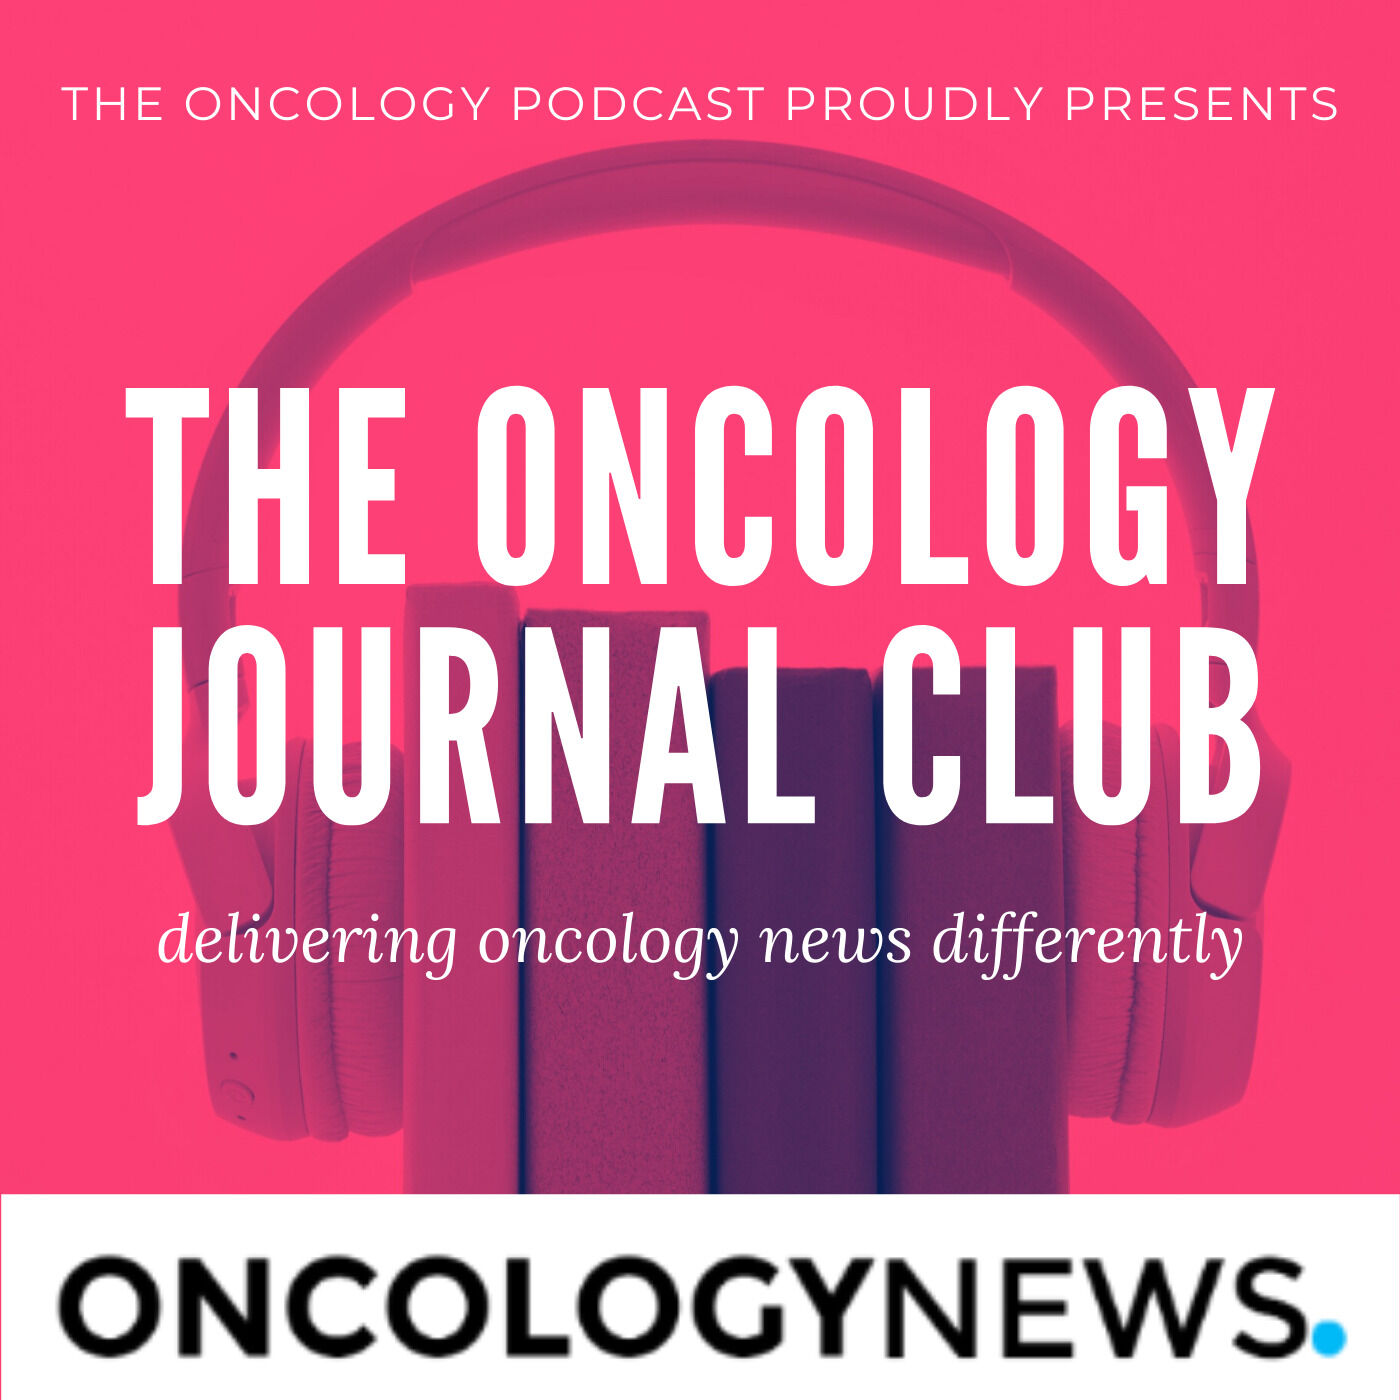 The Oncology Journal Club Episode 4: ASCO 2020 Review Part 2 with Special Guest Professor Michael Hofman and much more...